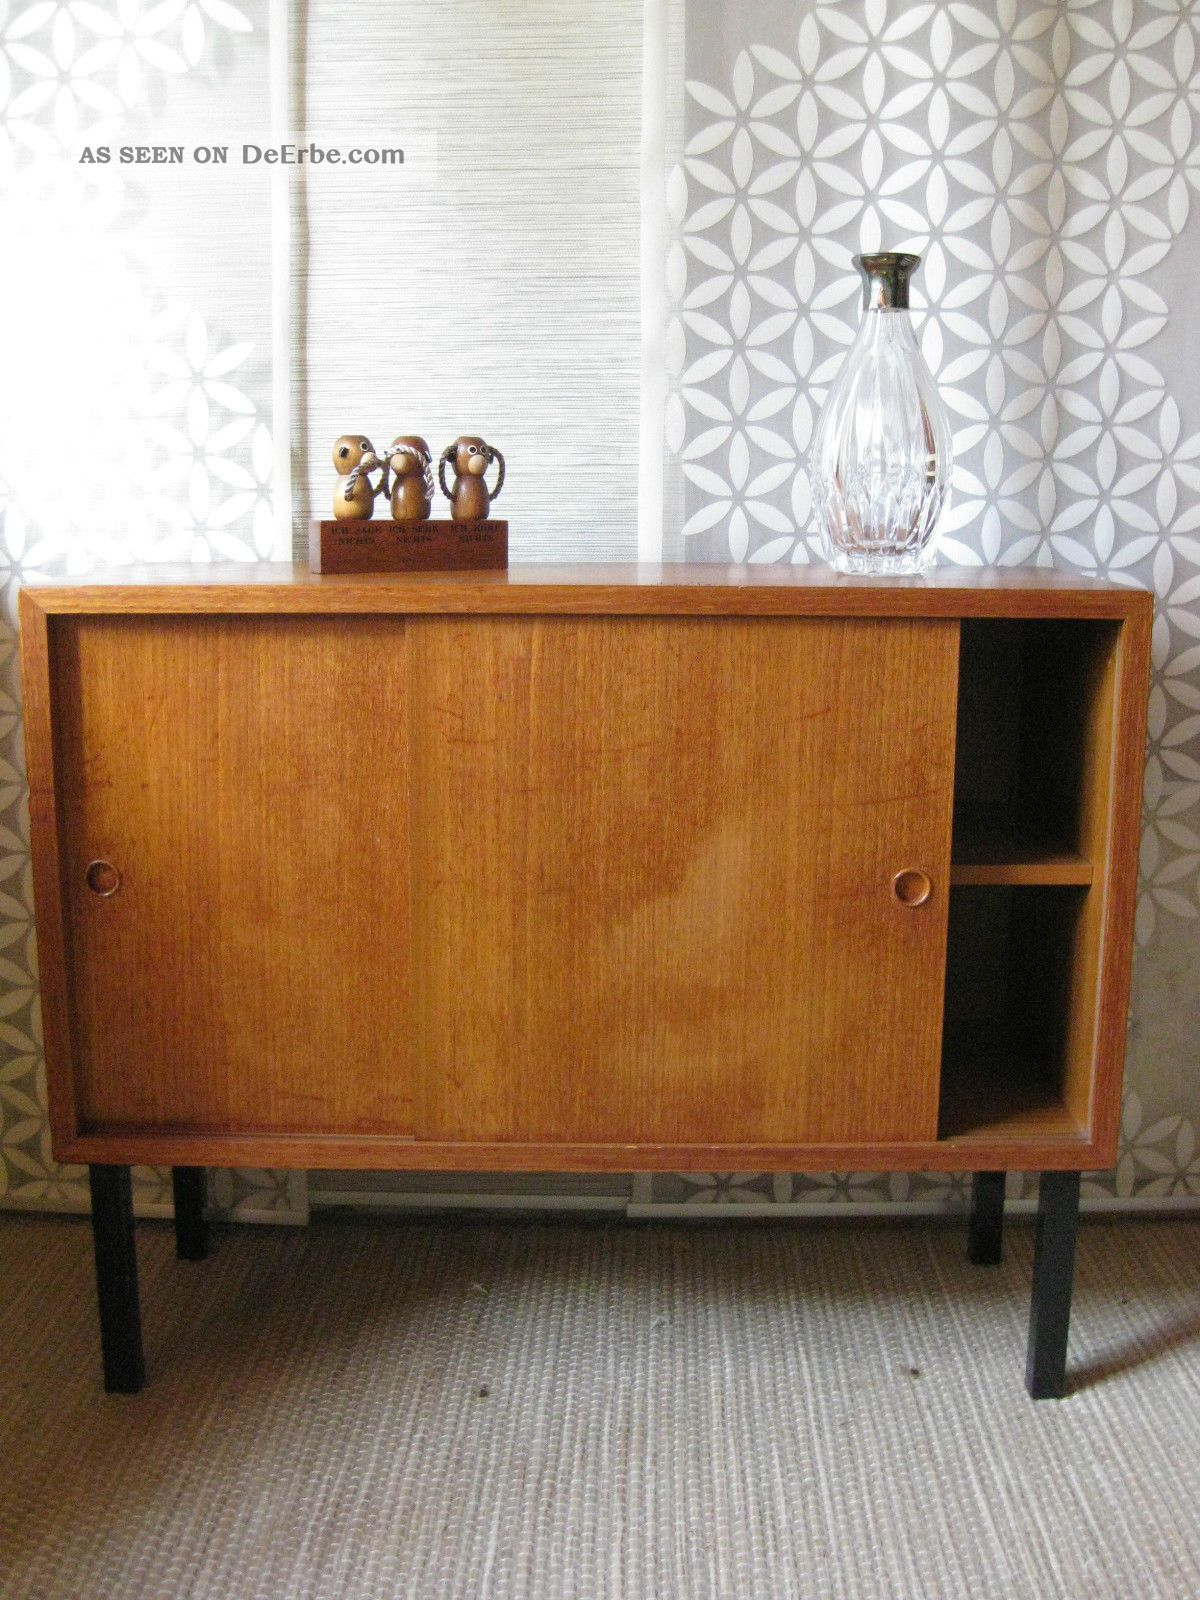 60er jahre kommode sideboard string ra danish modern. Black Bedroom Furniture Sets. Home Design Ideas